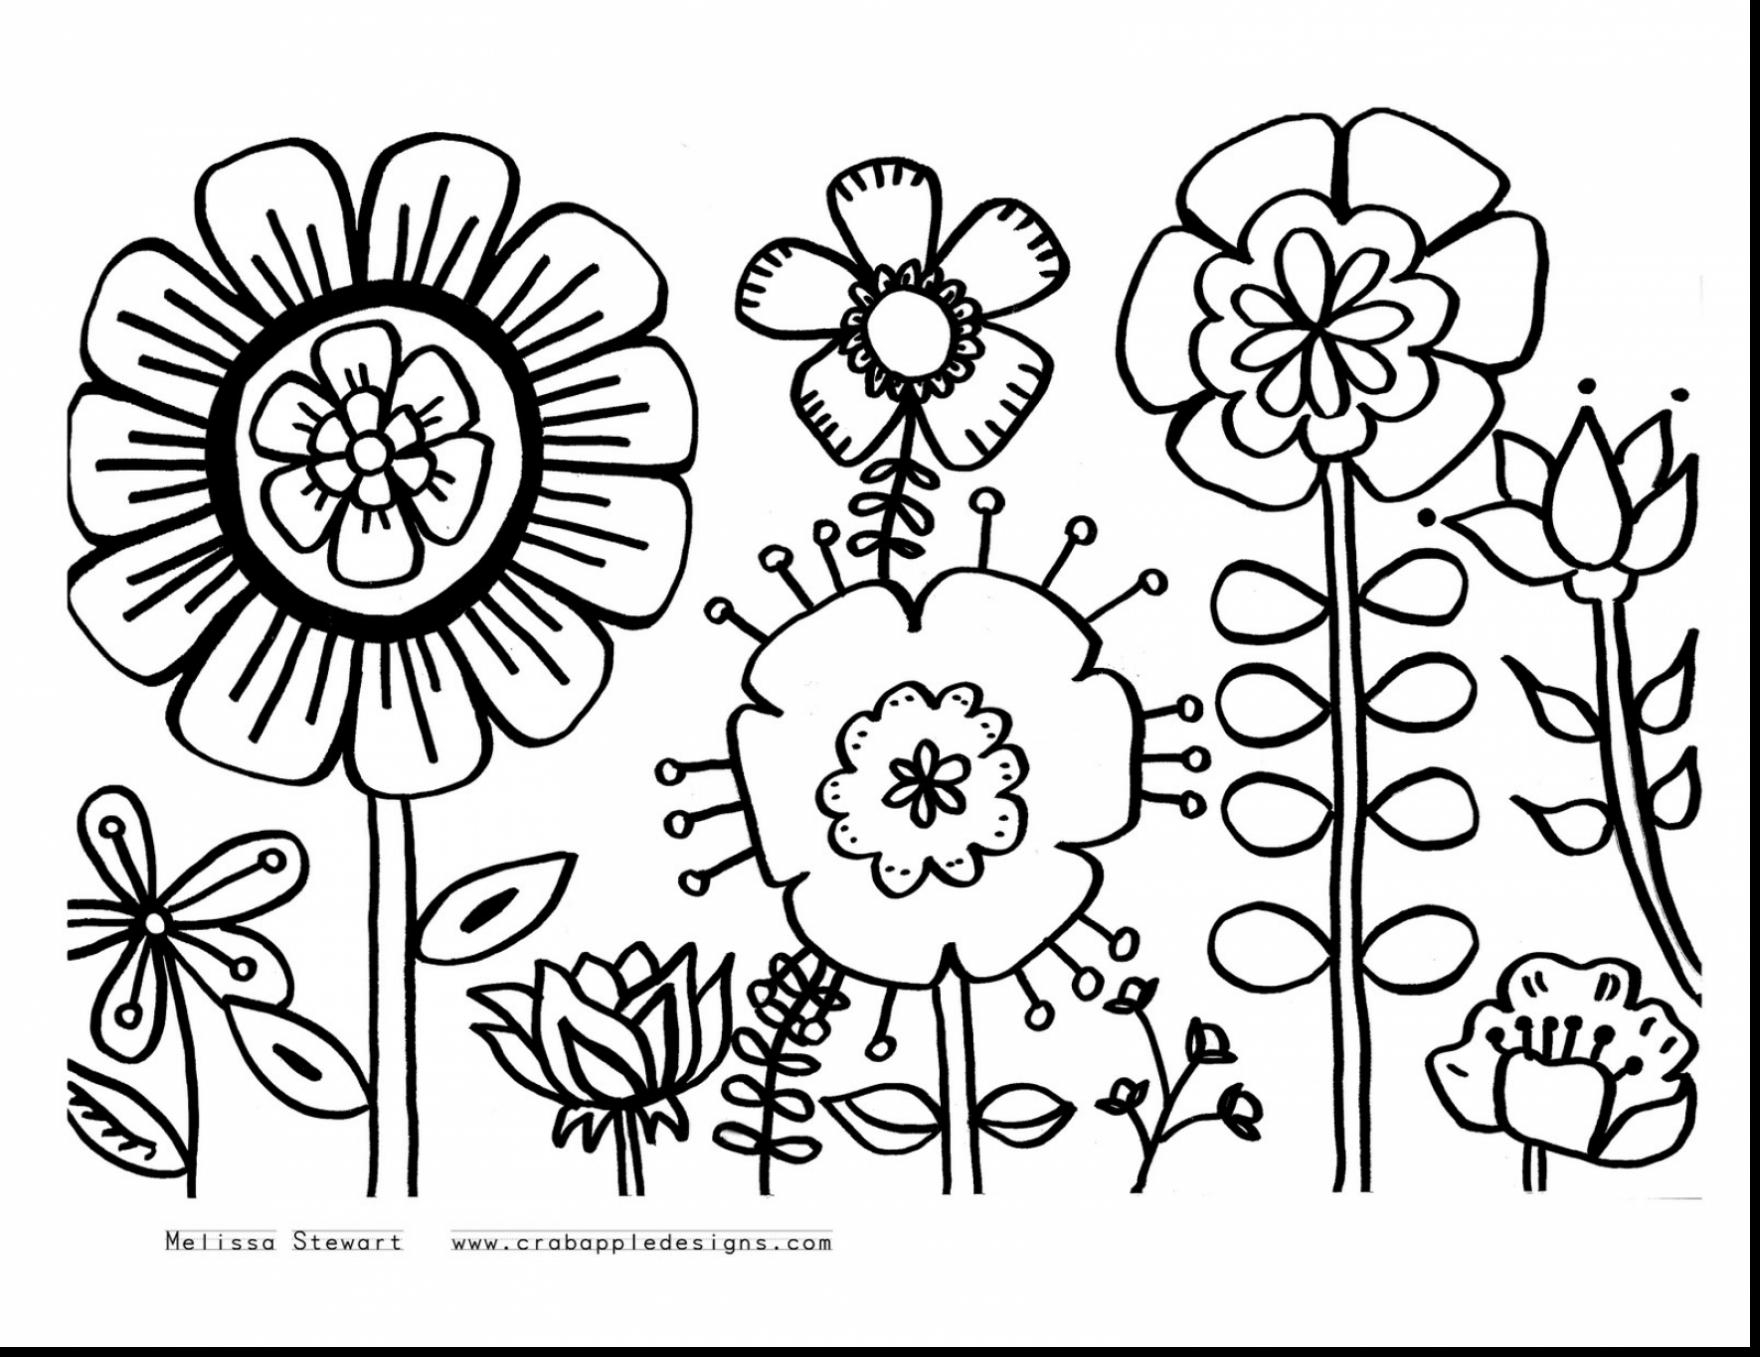 Flowers Coloring Pages Free Printable Flower Coloring Pages For Kids To Print With Appealing Fabulous